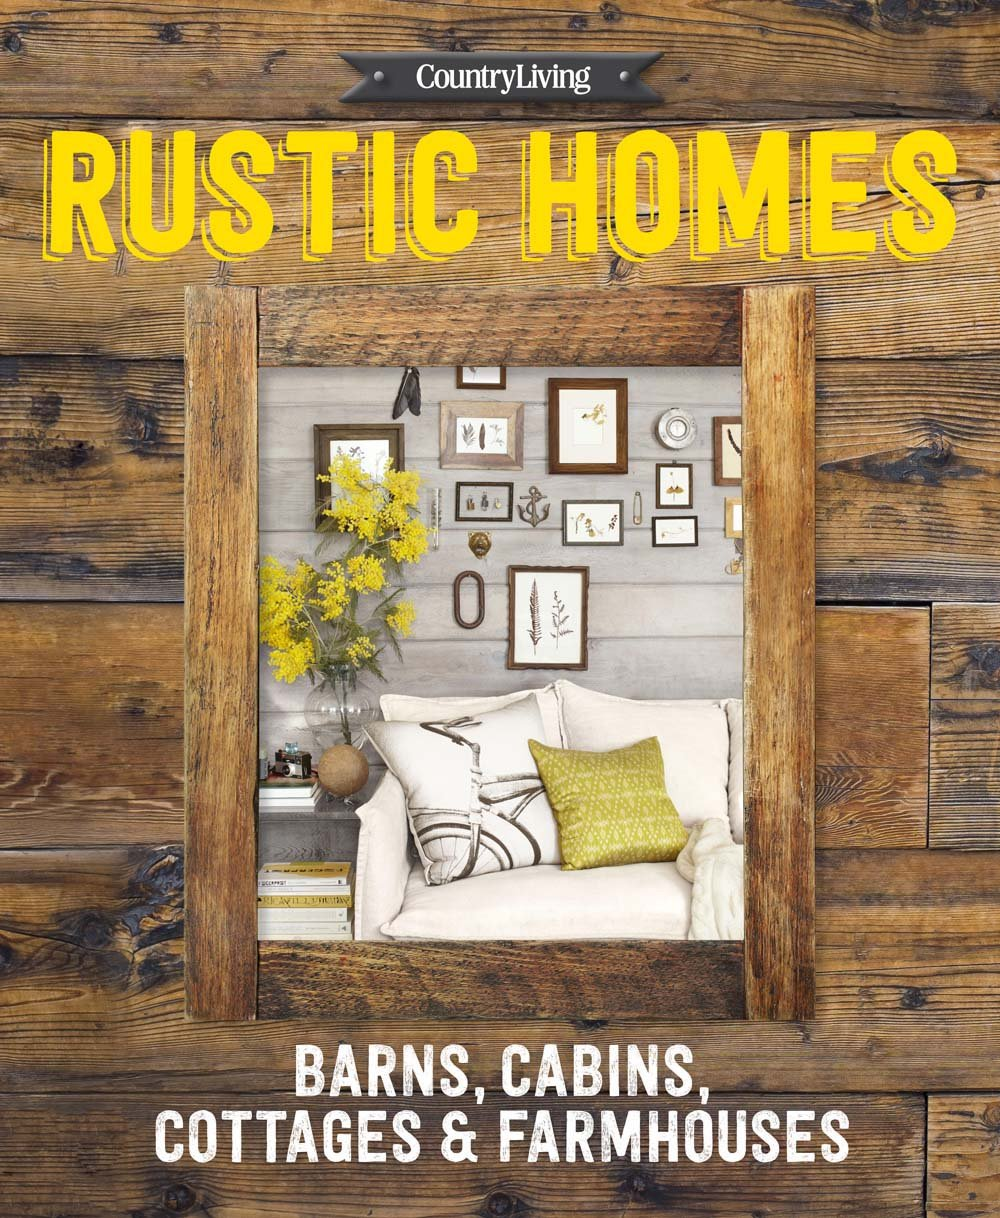 Country Living Rustic Homes: Barns, Cabins, Cottages & Farmhouses pdf epub